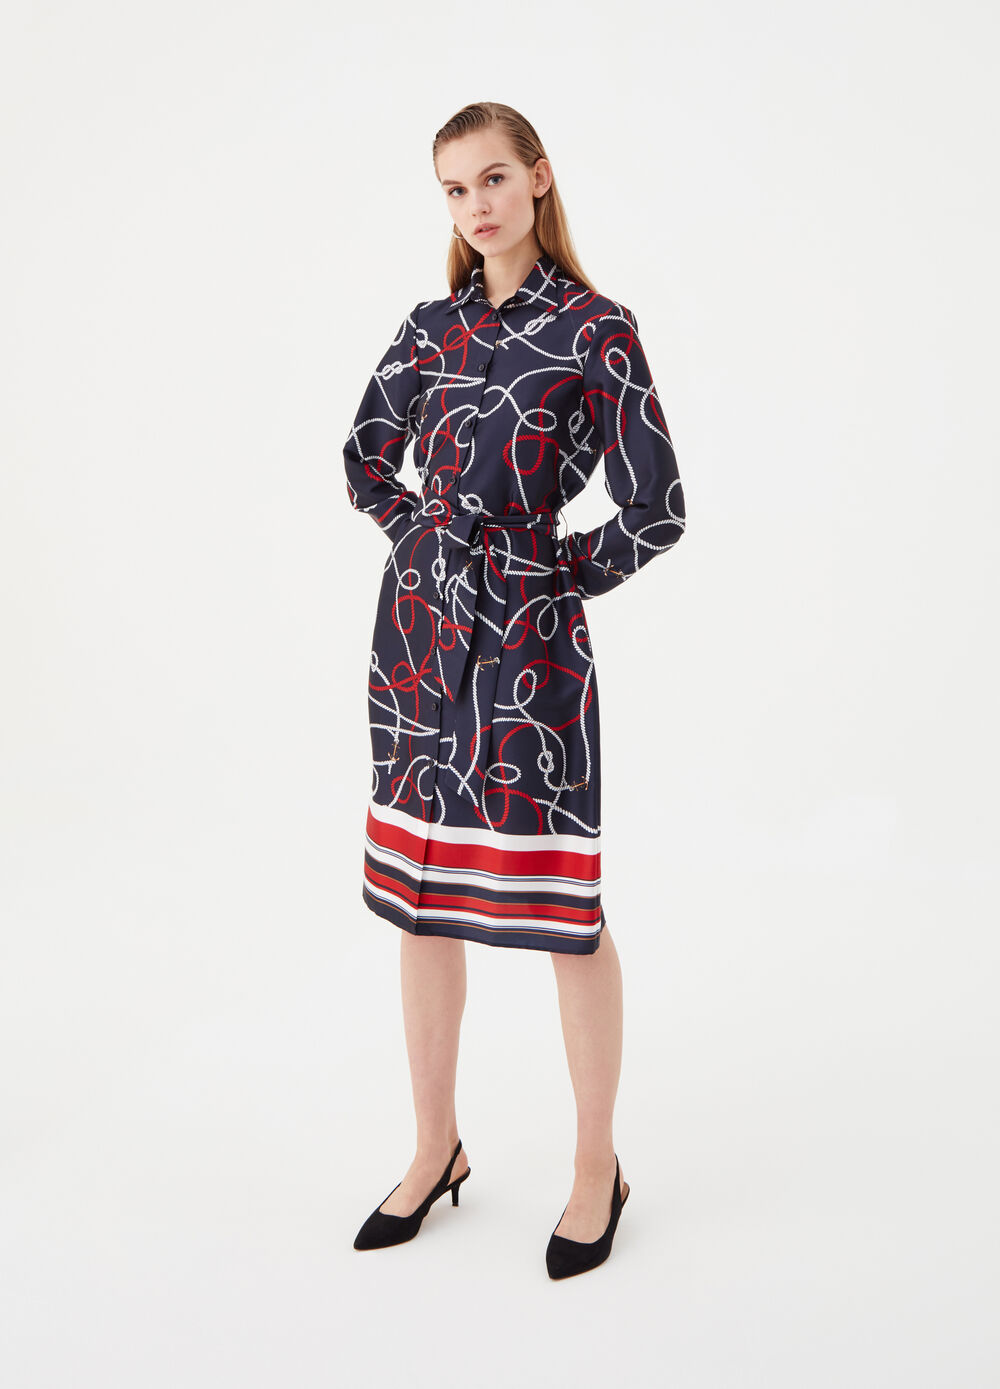 Dress with collar and patterned sash